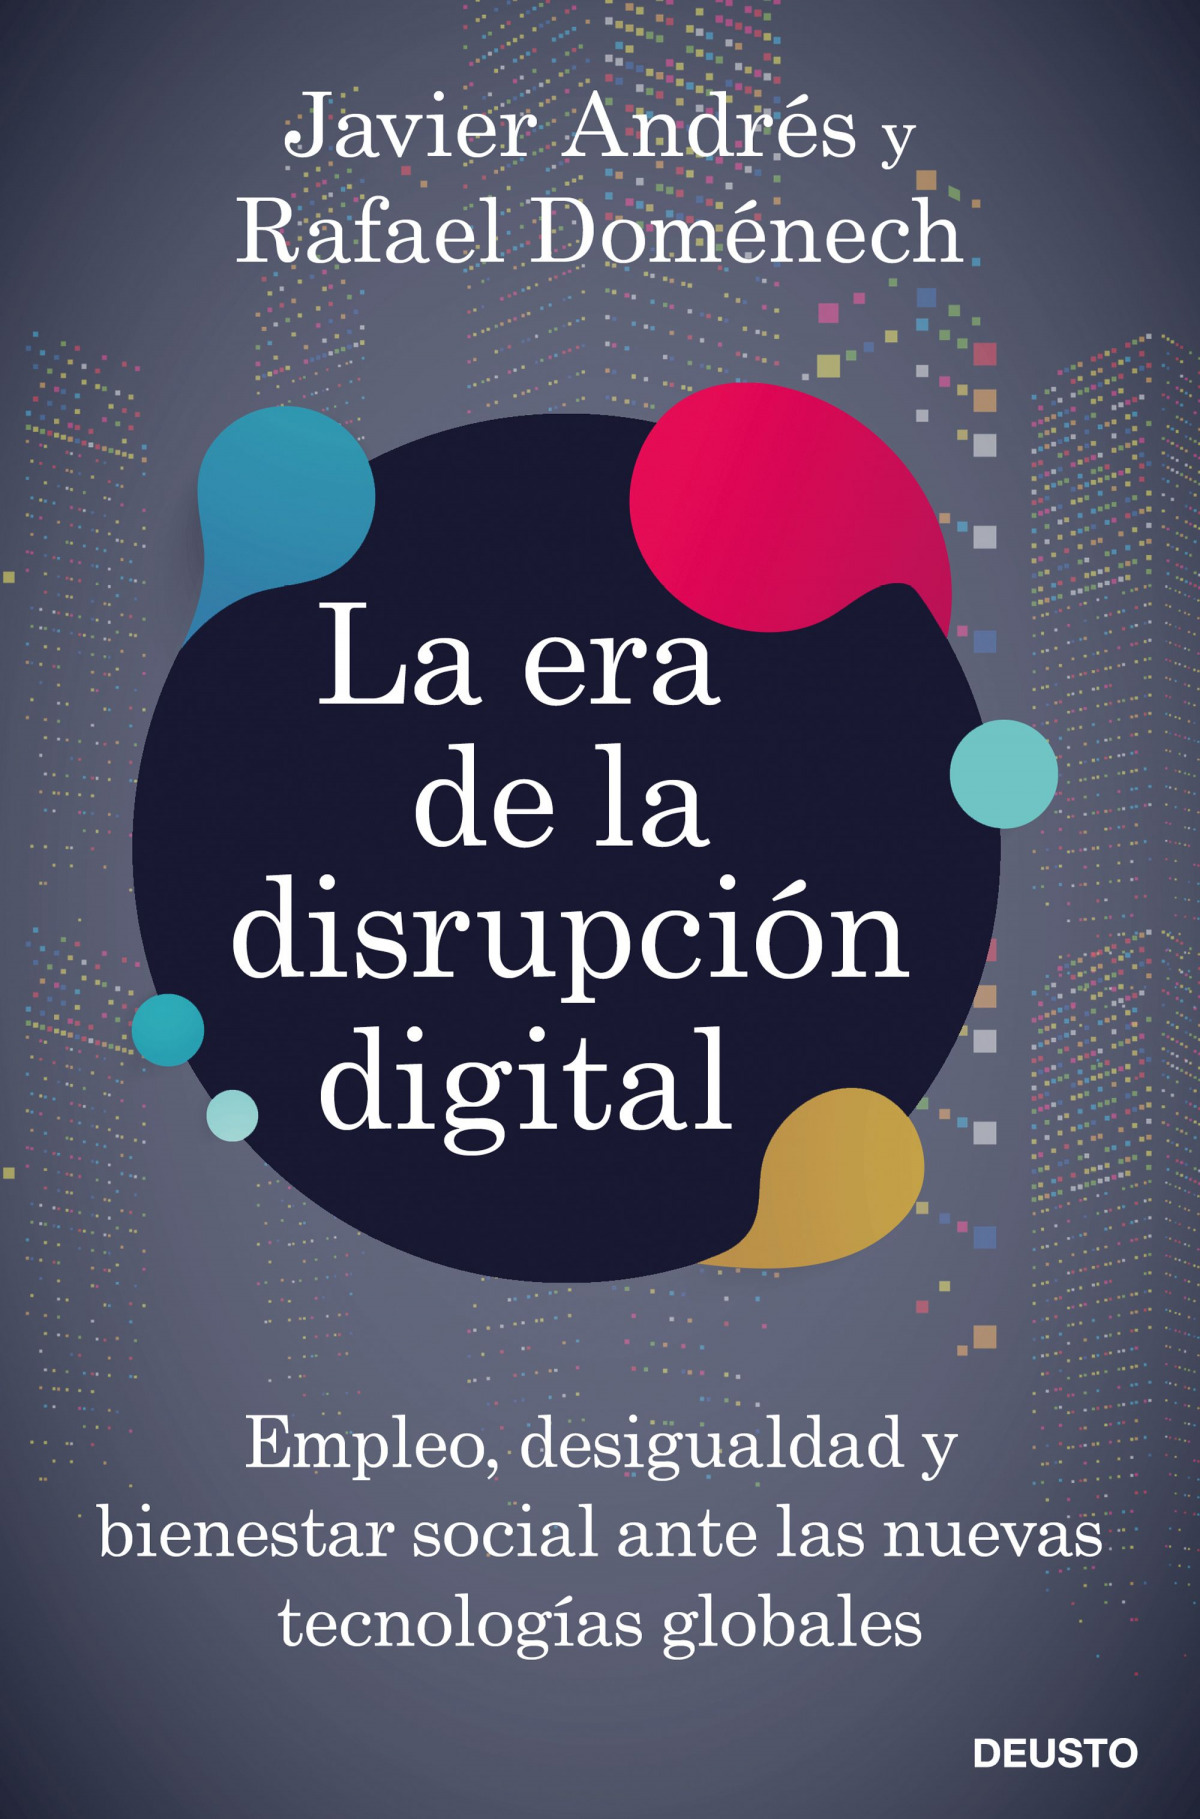 La era de la disrupción digital